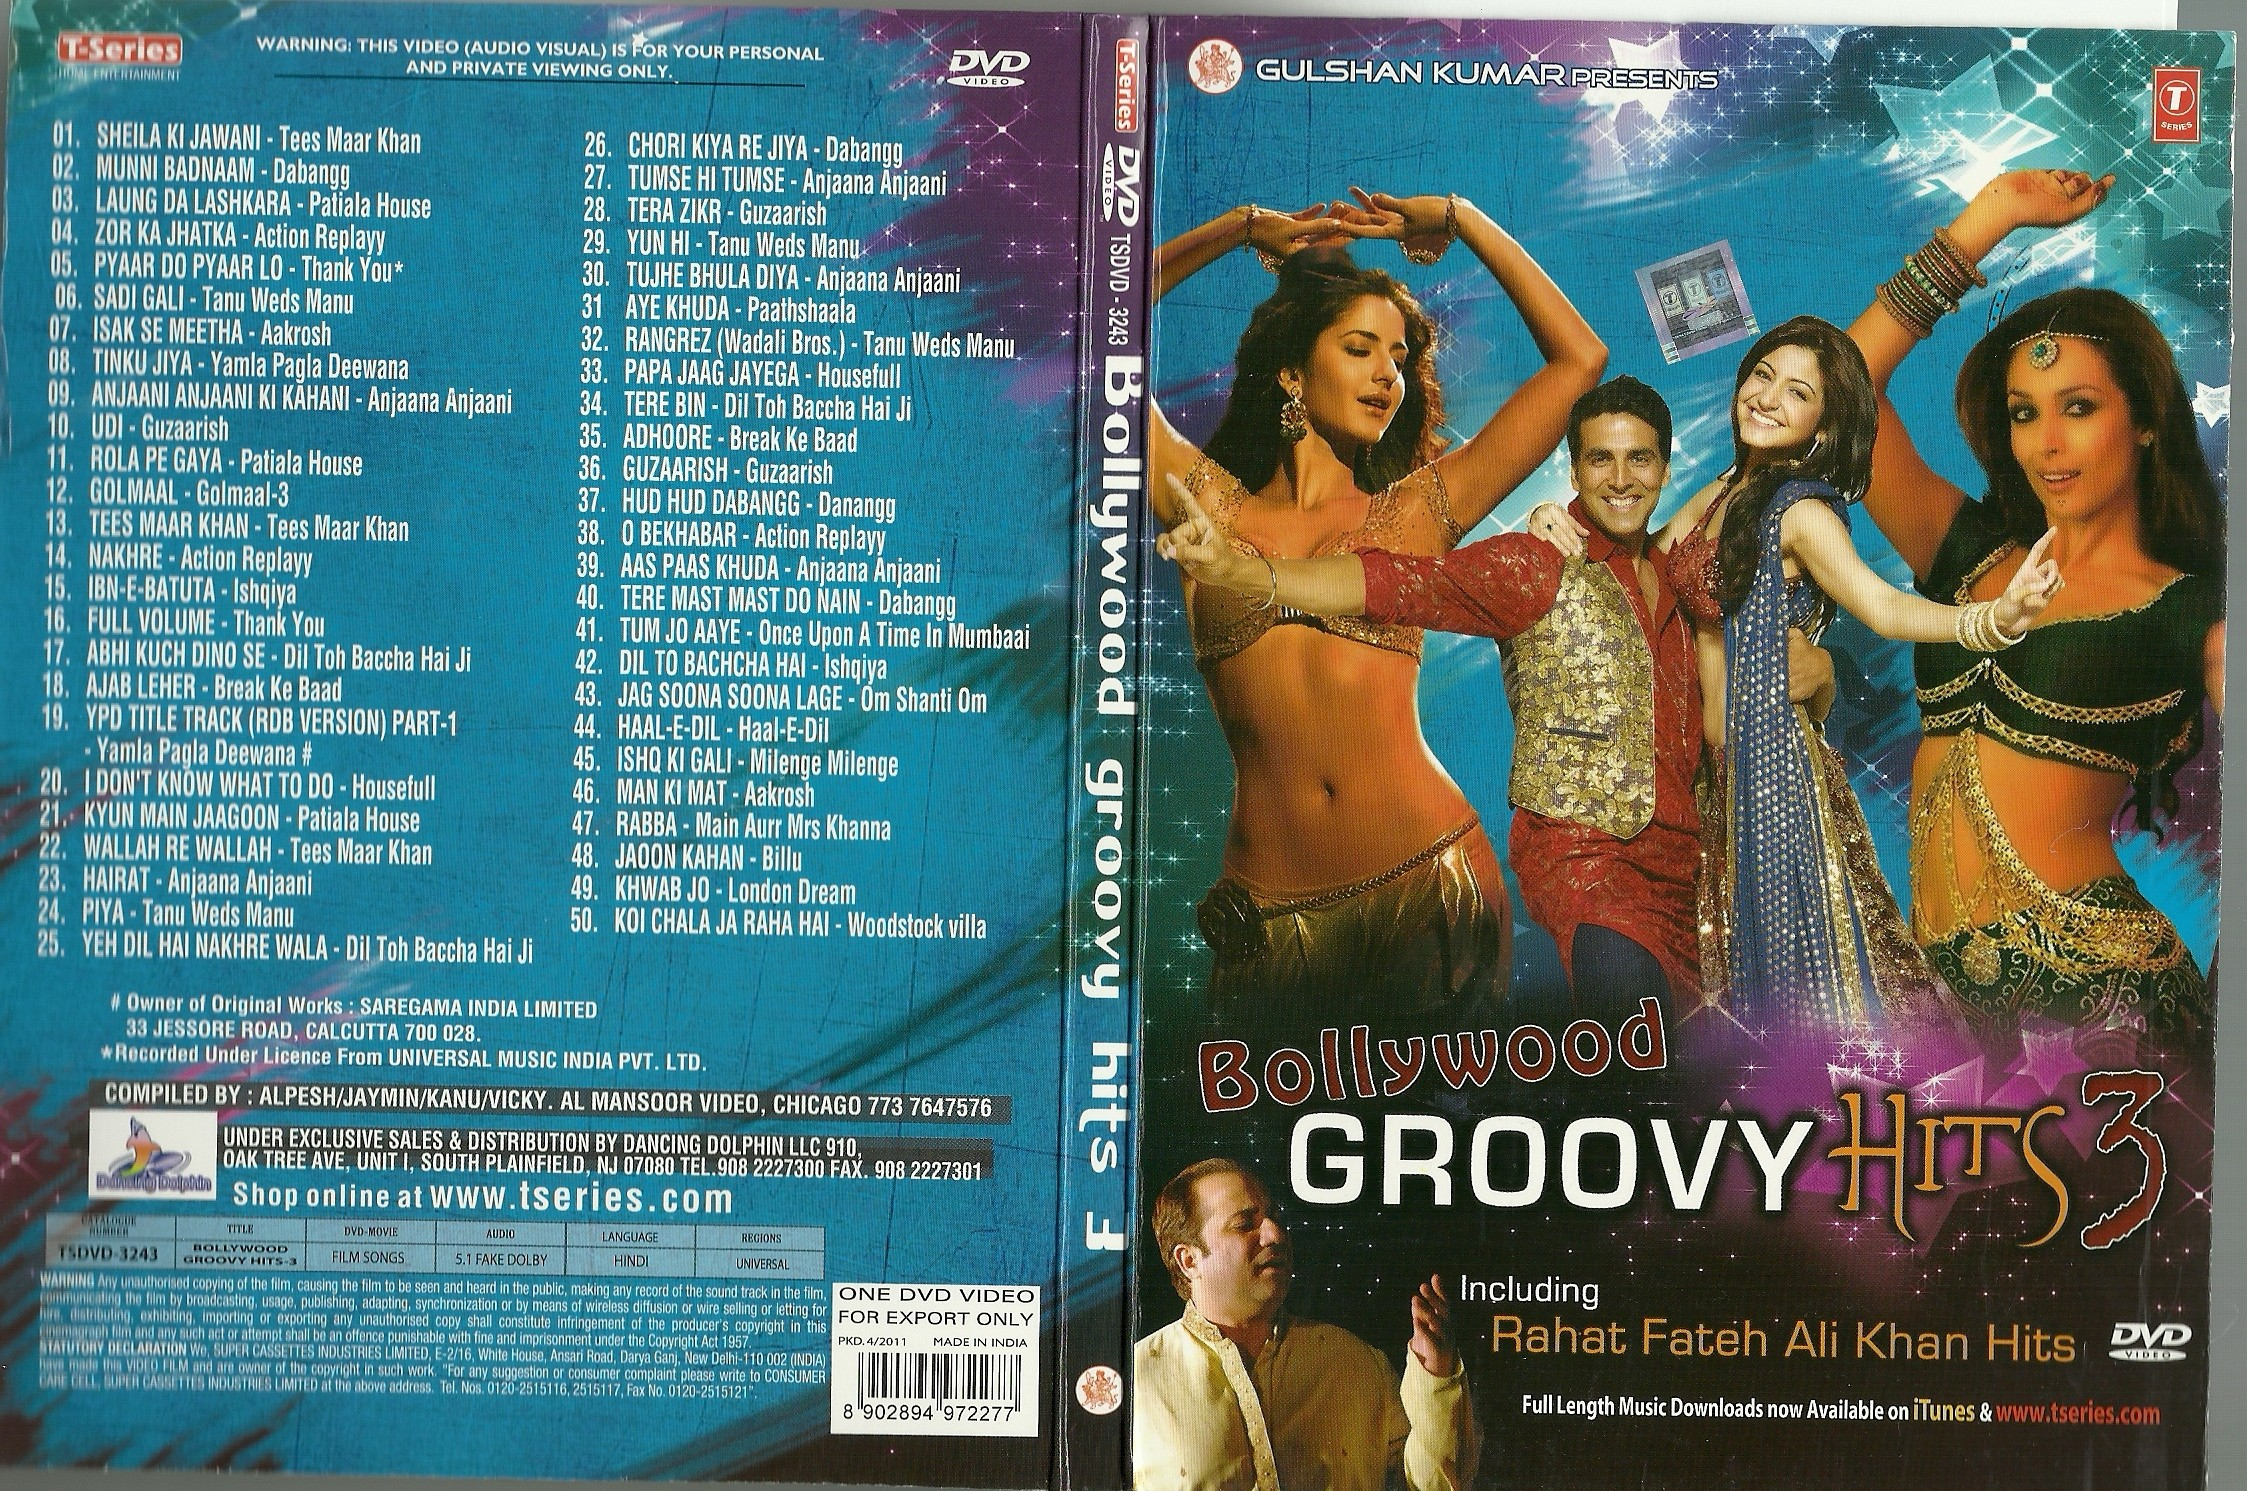 Bollywood Groovy Hits-2011